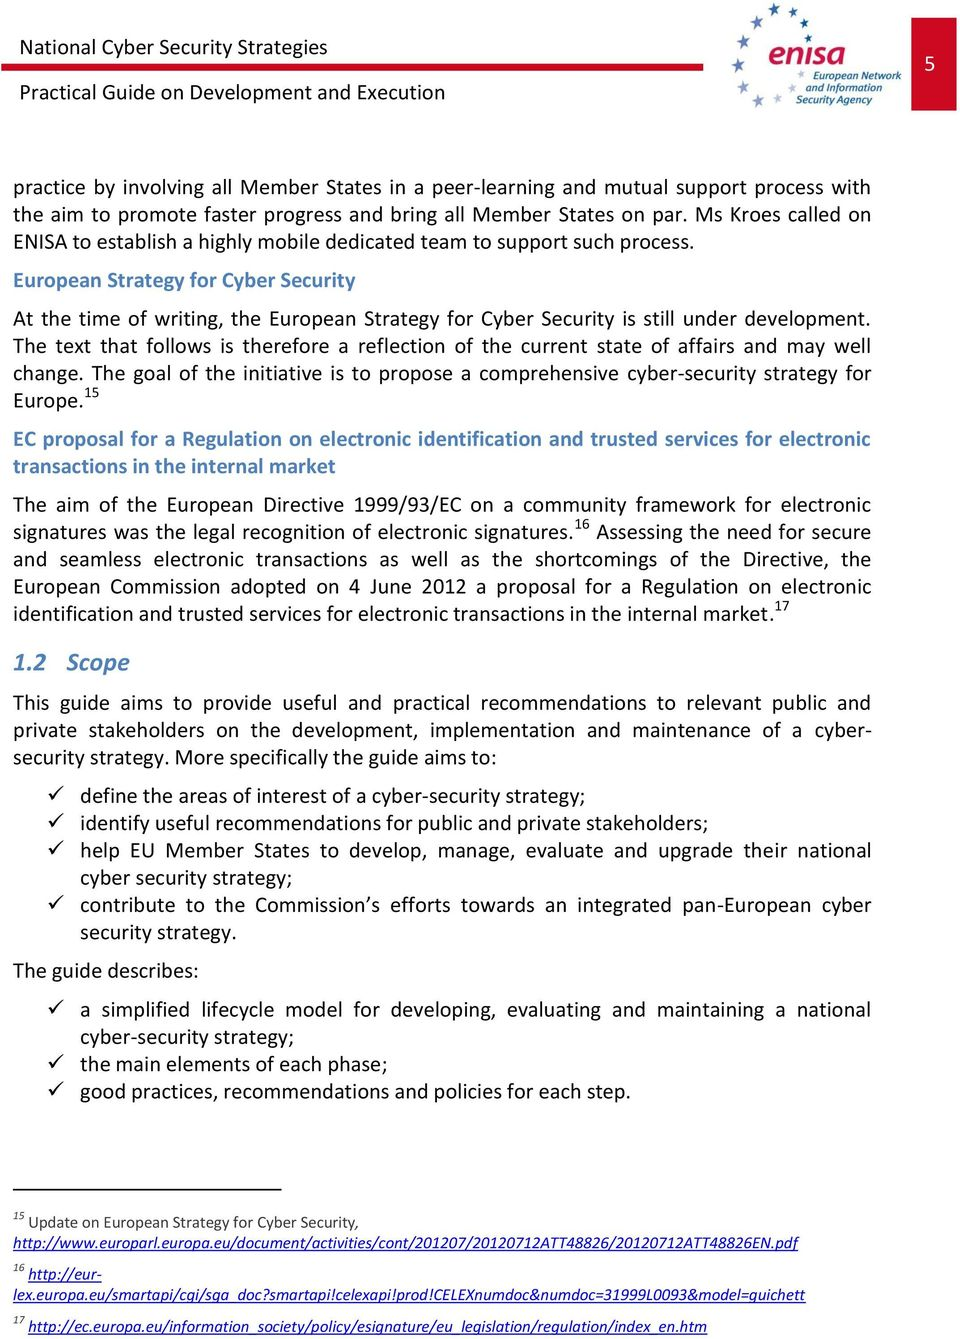 European Strategy for Cyber Security At the time of writing, the European Strategy for Cyber Security is still under development.